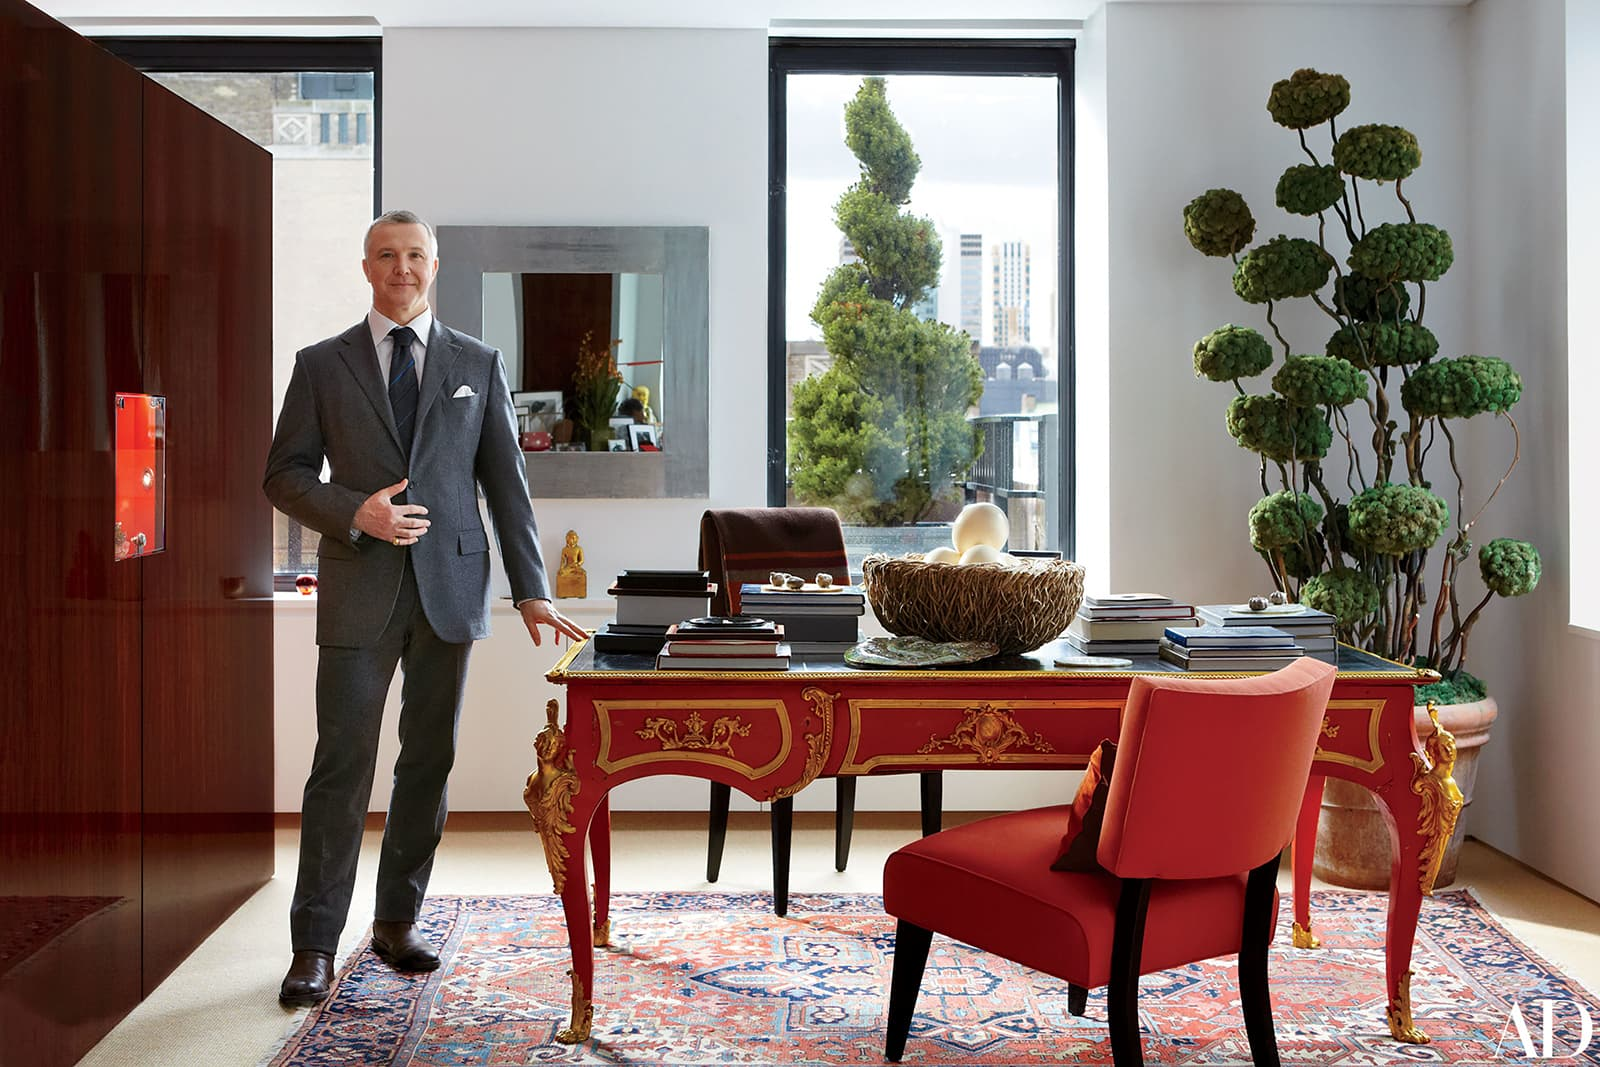 James Claude Taffin de Givenchy, founder of Taffin in his New York showroom. Image courtesy of Architectural Digest